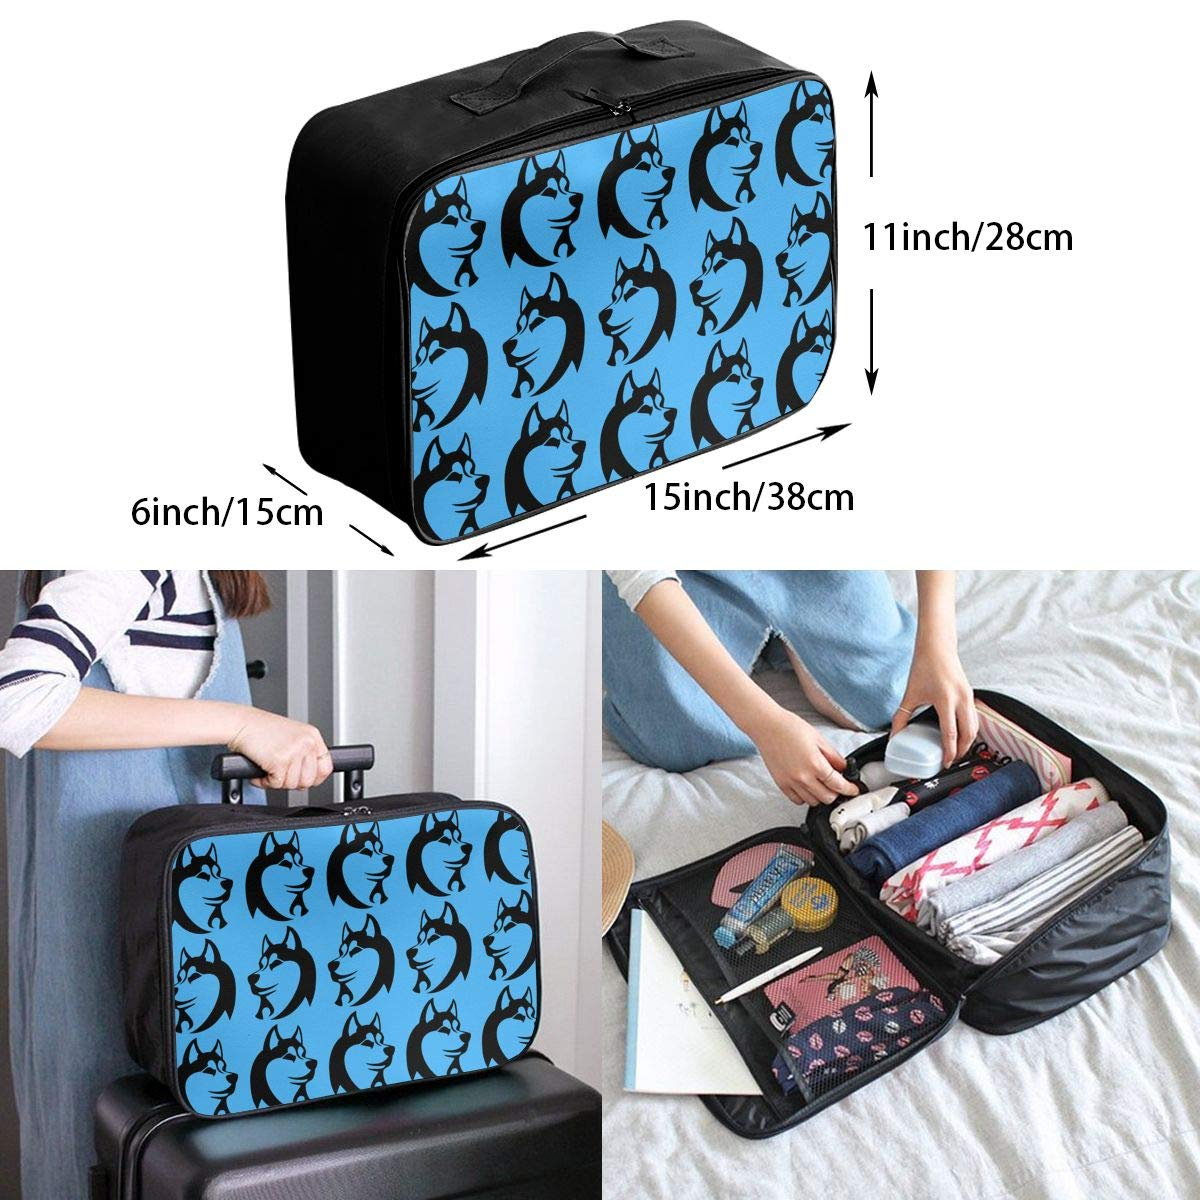 YueLJB Husky Dog Head Pattern Lightweight Large Capacity Portable Luggage Bag Travel Duffel Bag Storage Carry Luggage Duffle Tote Bag